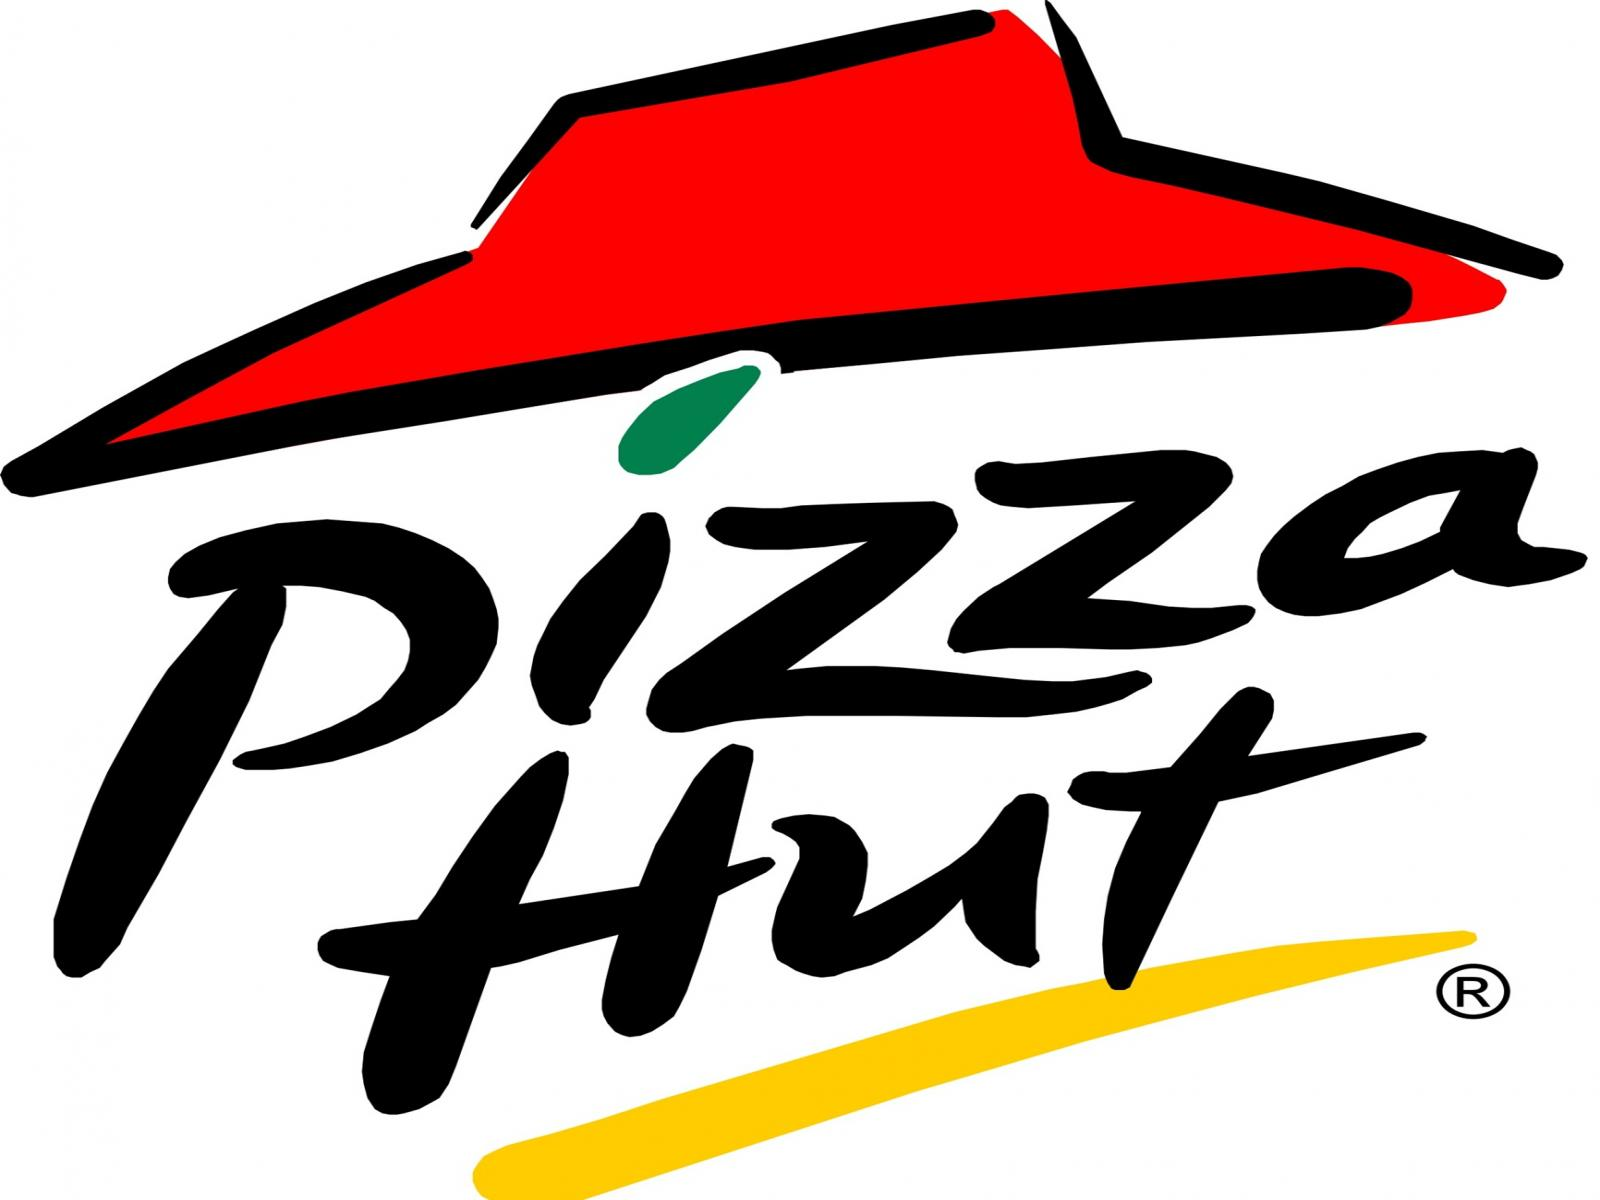 必胜客(pizza hut)